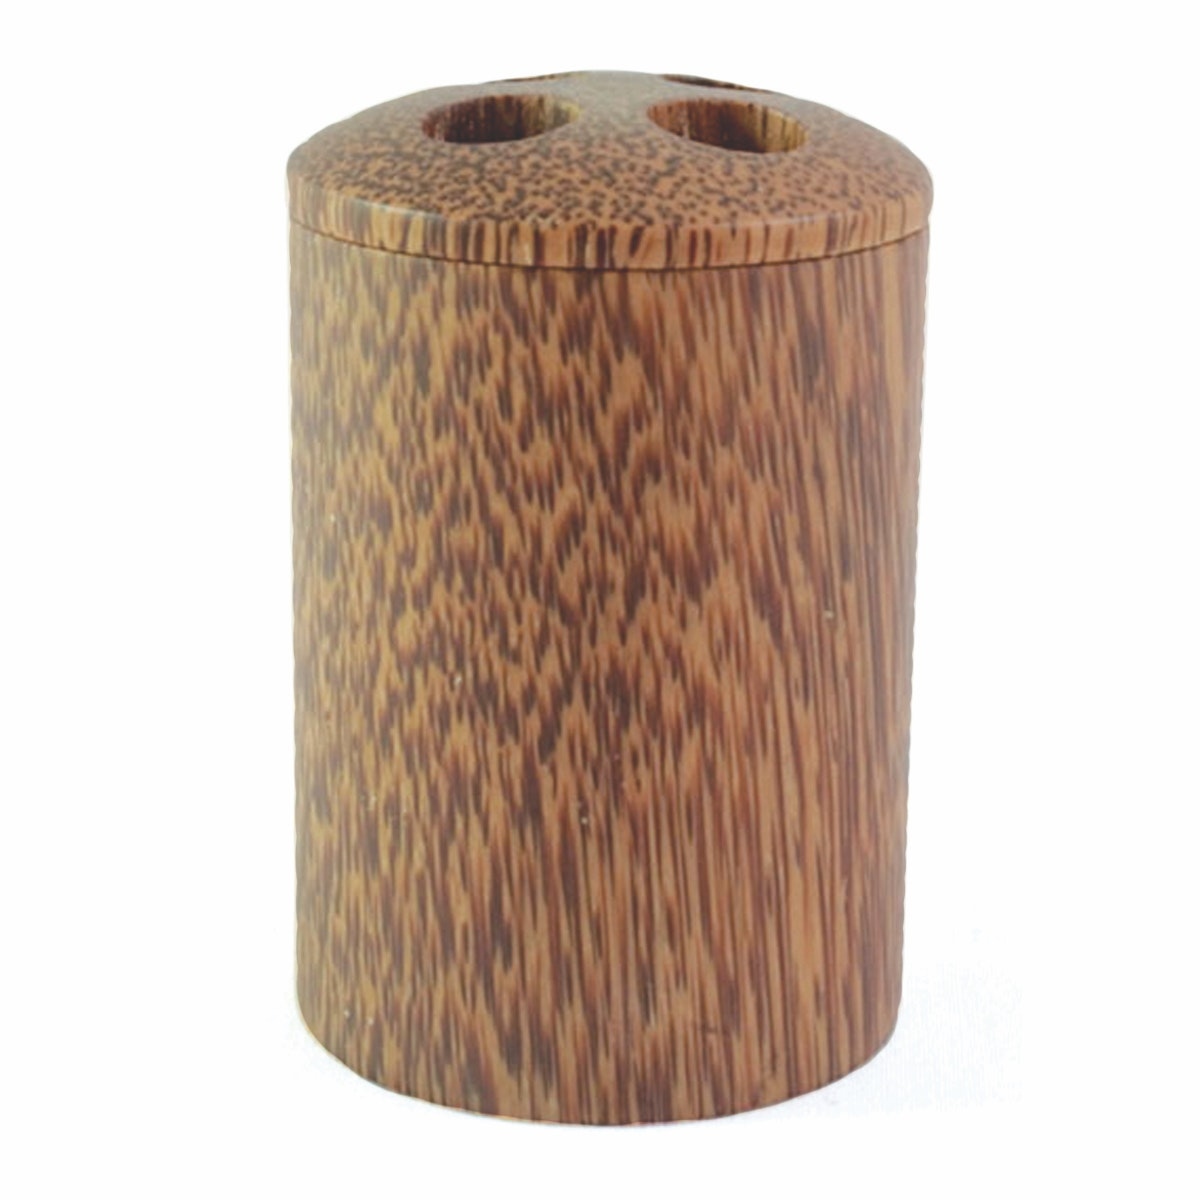 COCOBOLO Copa tooth brush holder